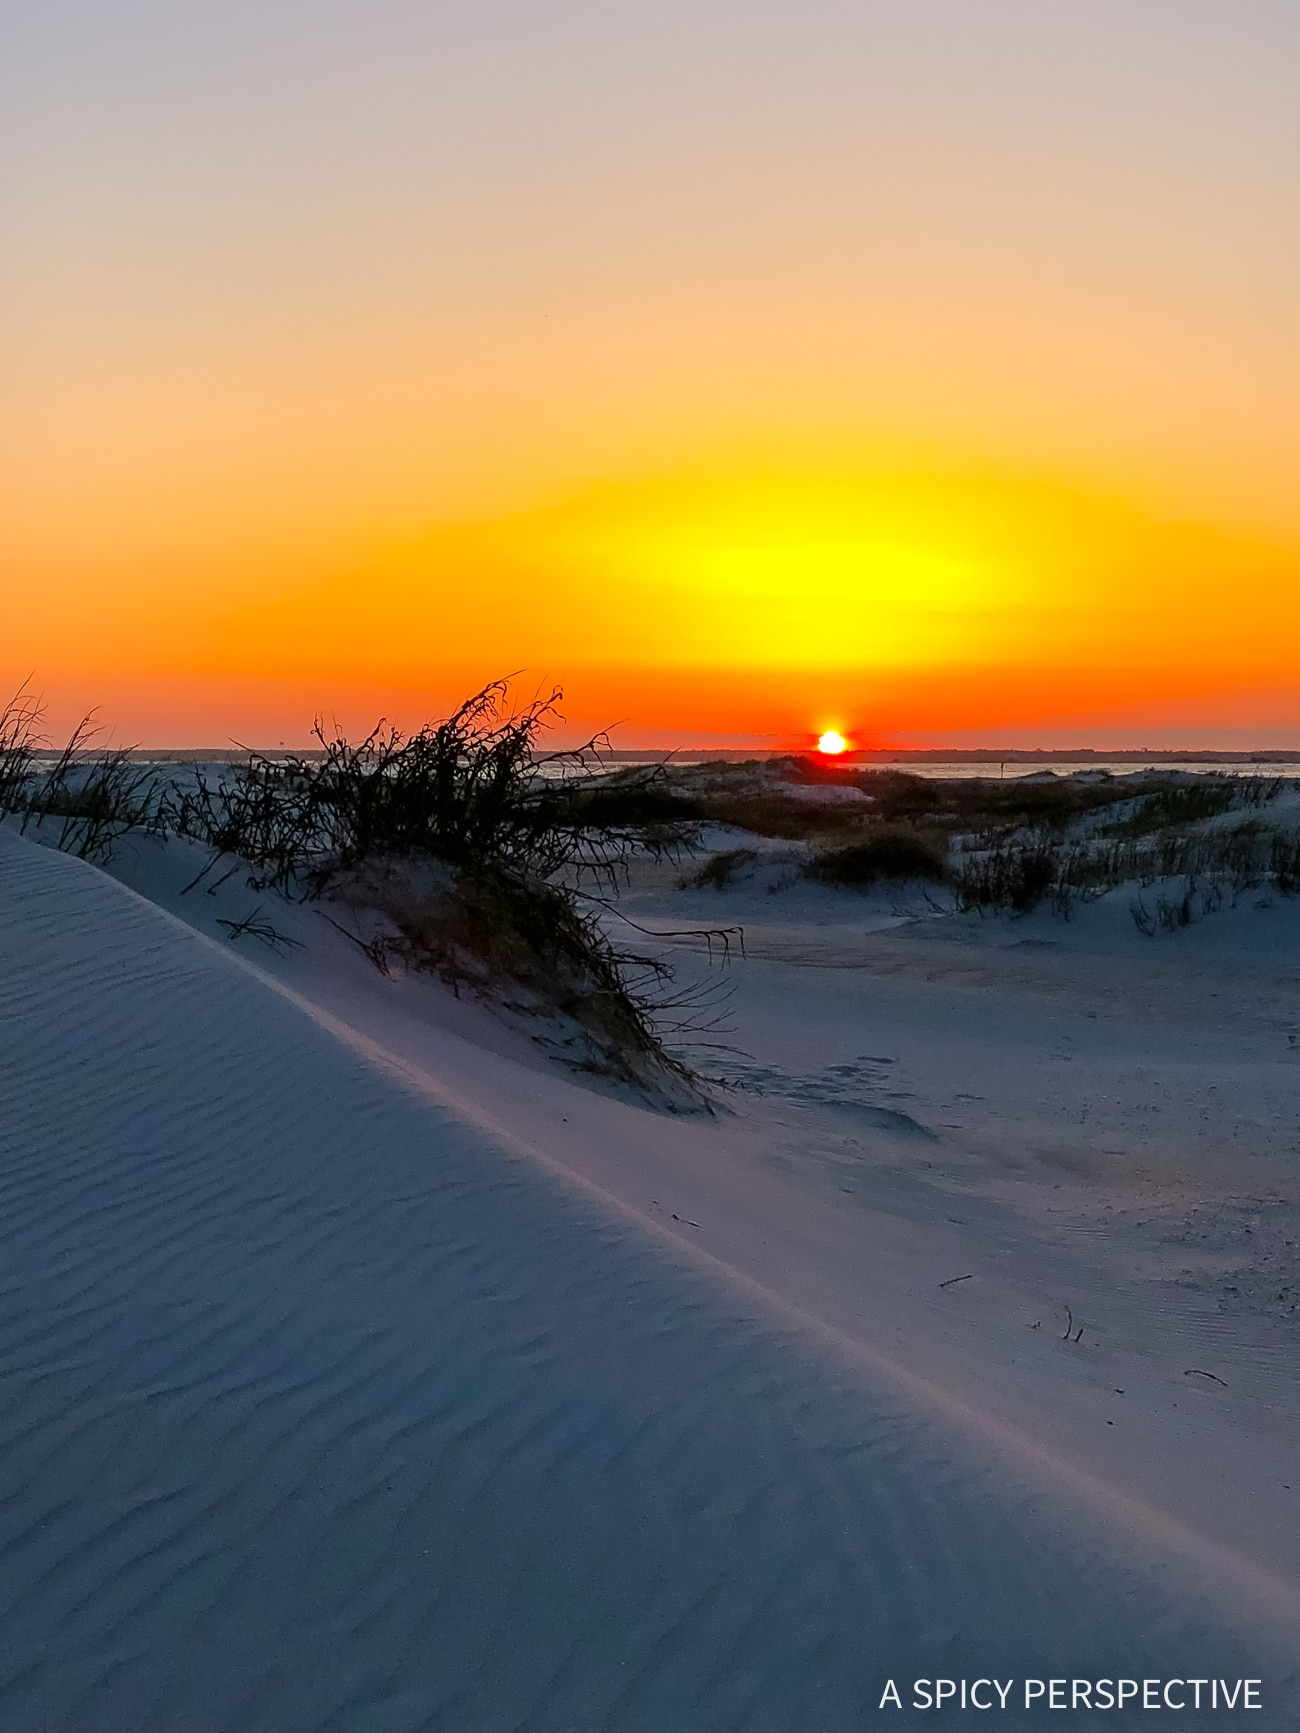 Sunsets - Why You Should Visit The Crystal Coast Outer Banks NC (Emerald Isle Vacation Travel Tips!)